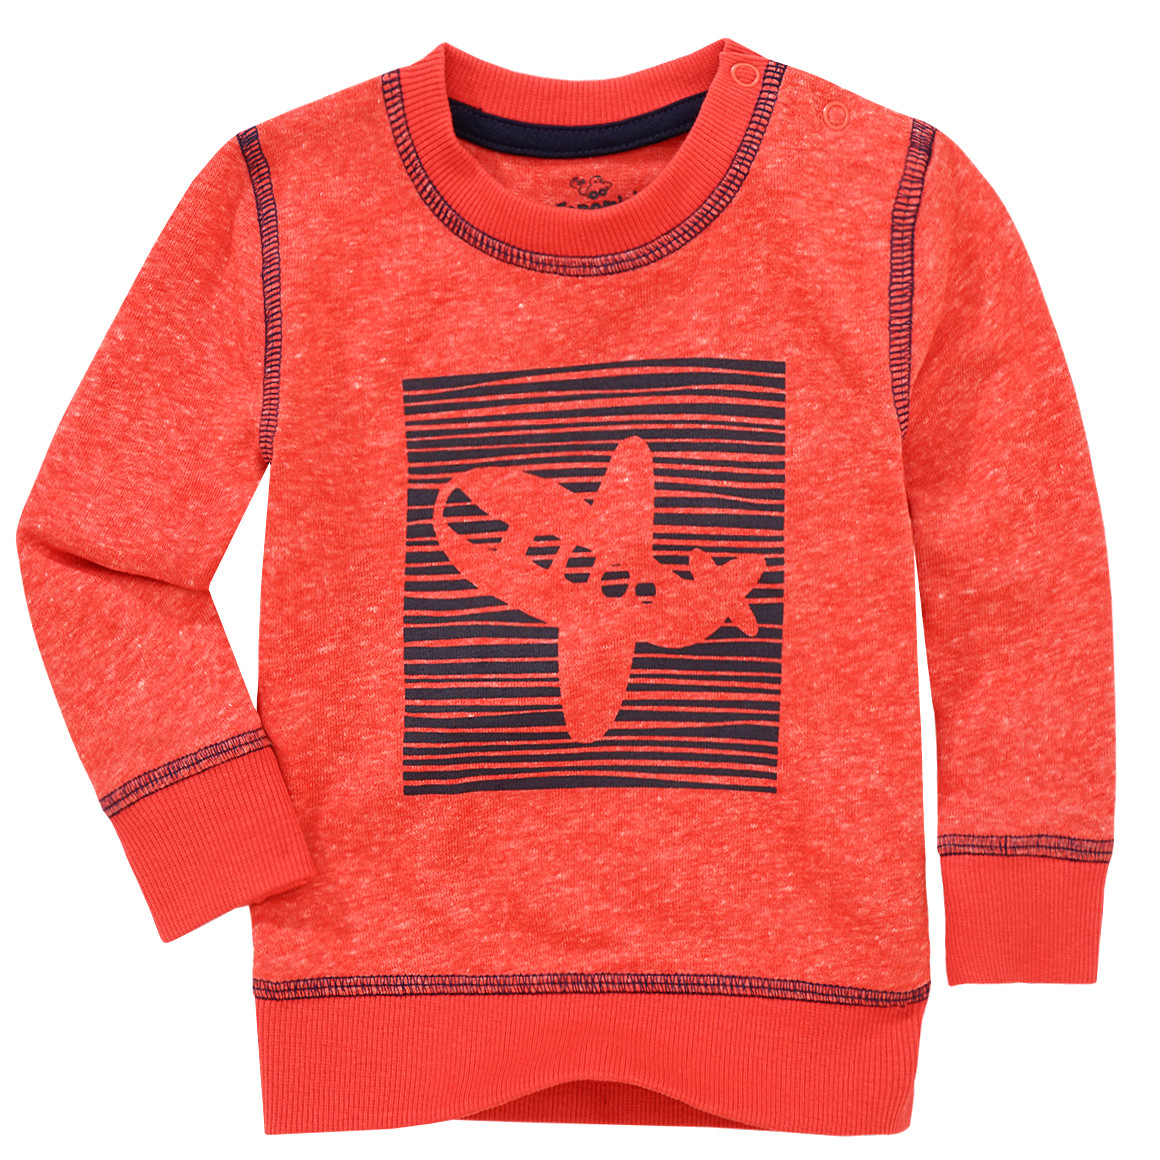 Pullover in Rot mit Flugzeugmotiv